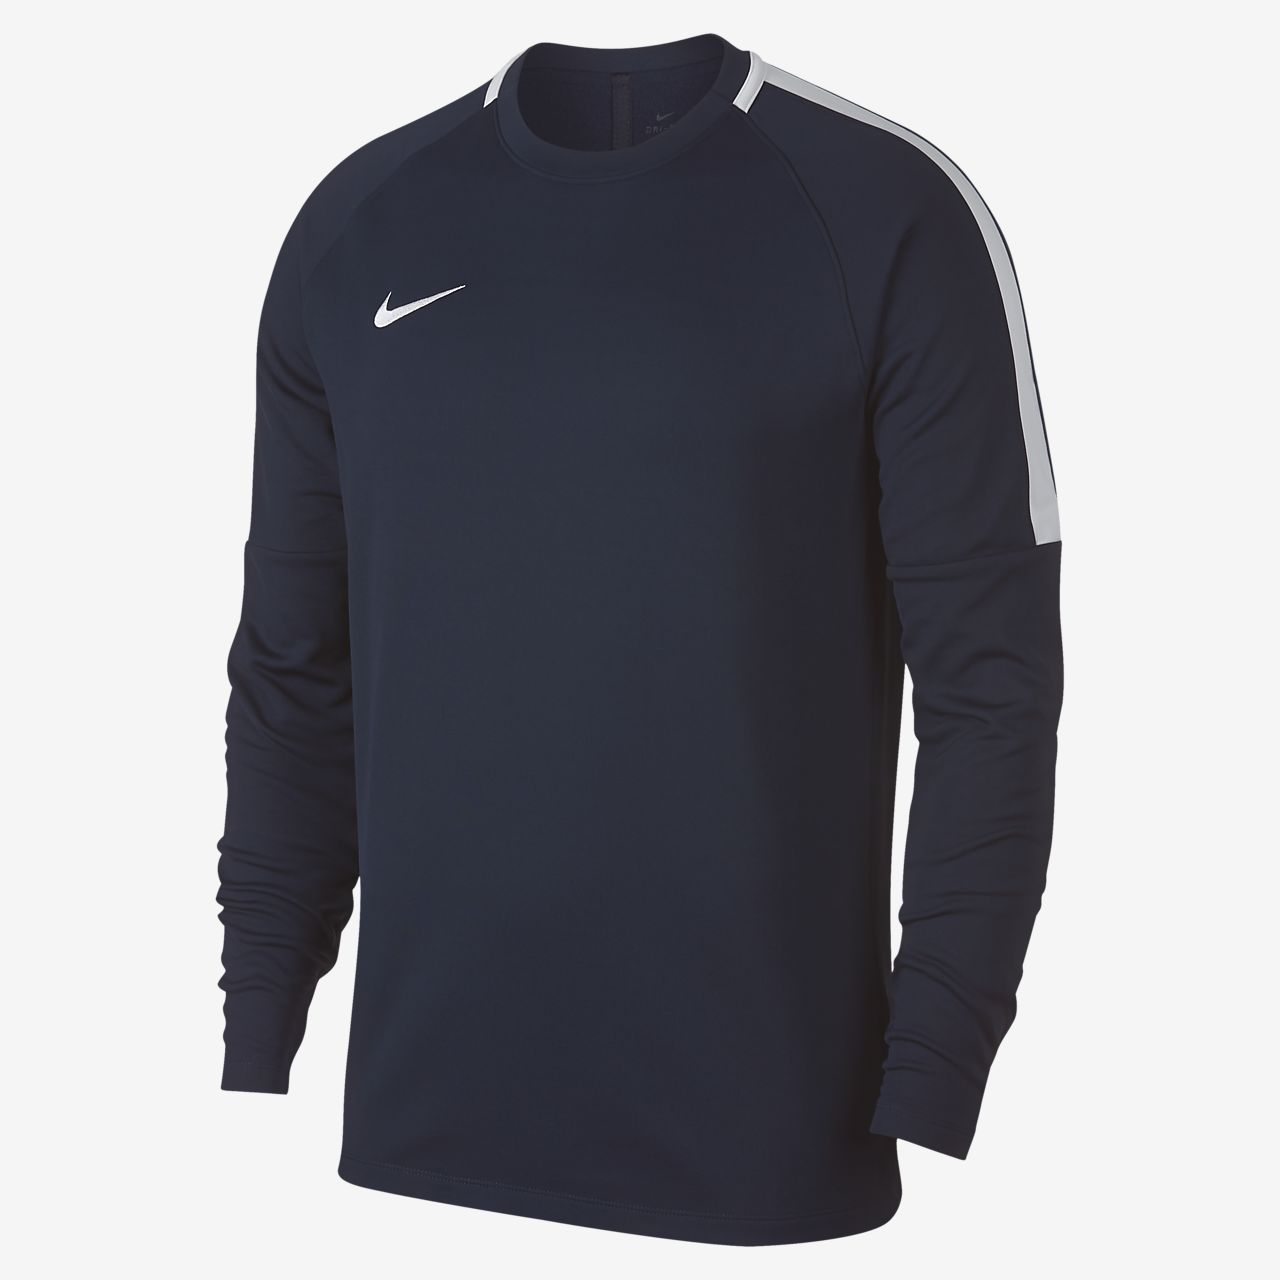 Nike Dri-FIT Academy Men's Football Sweatshirt